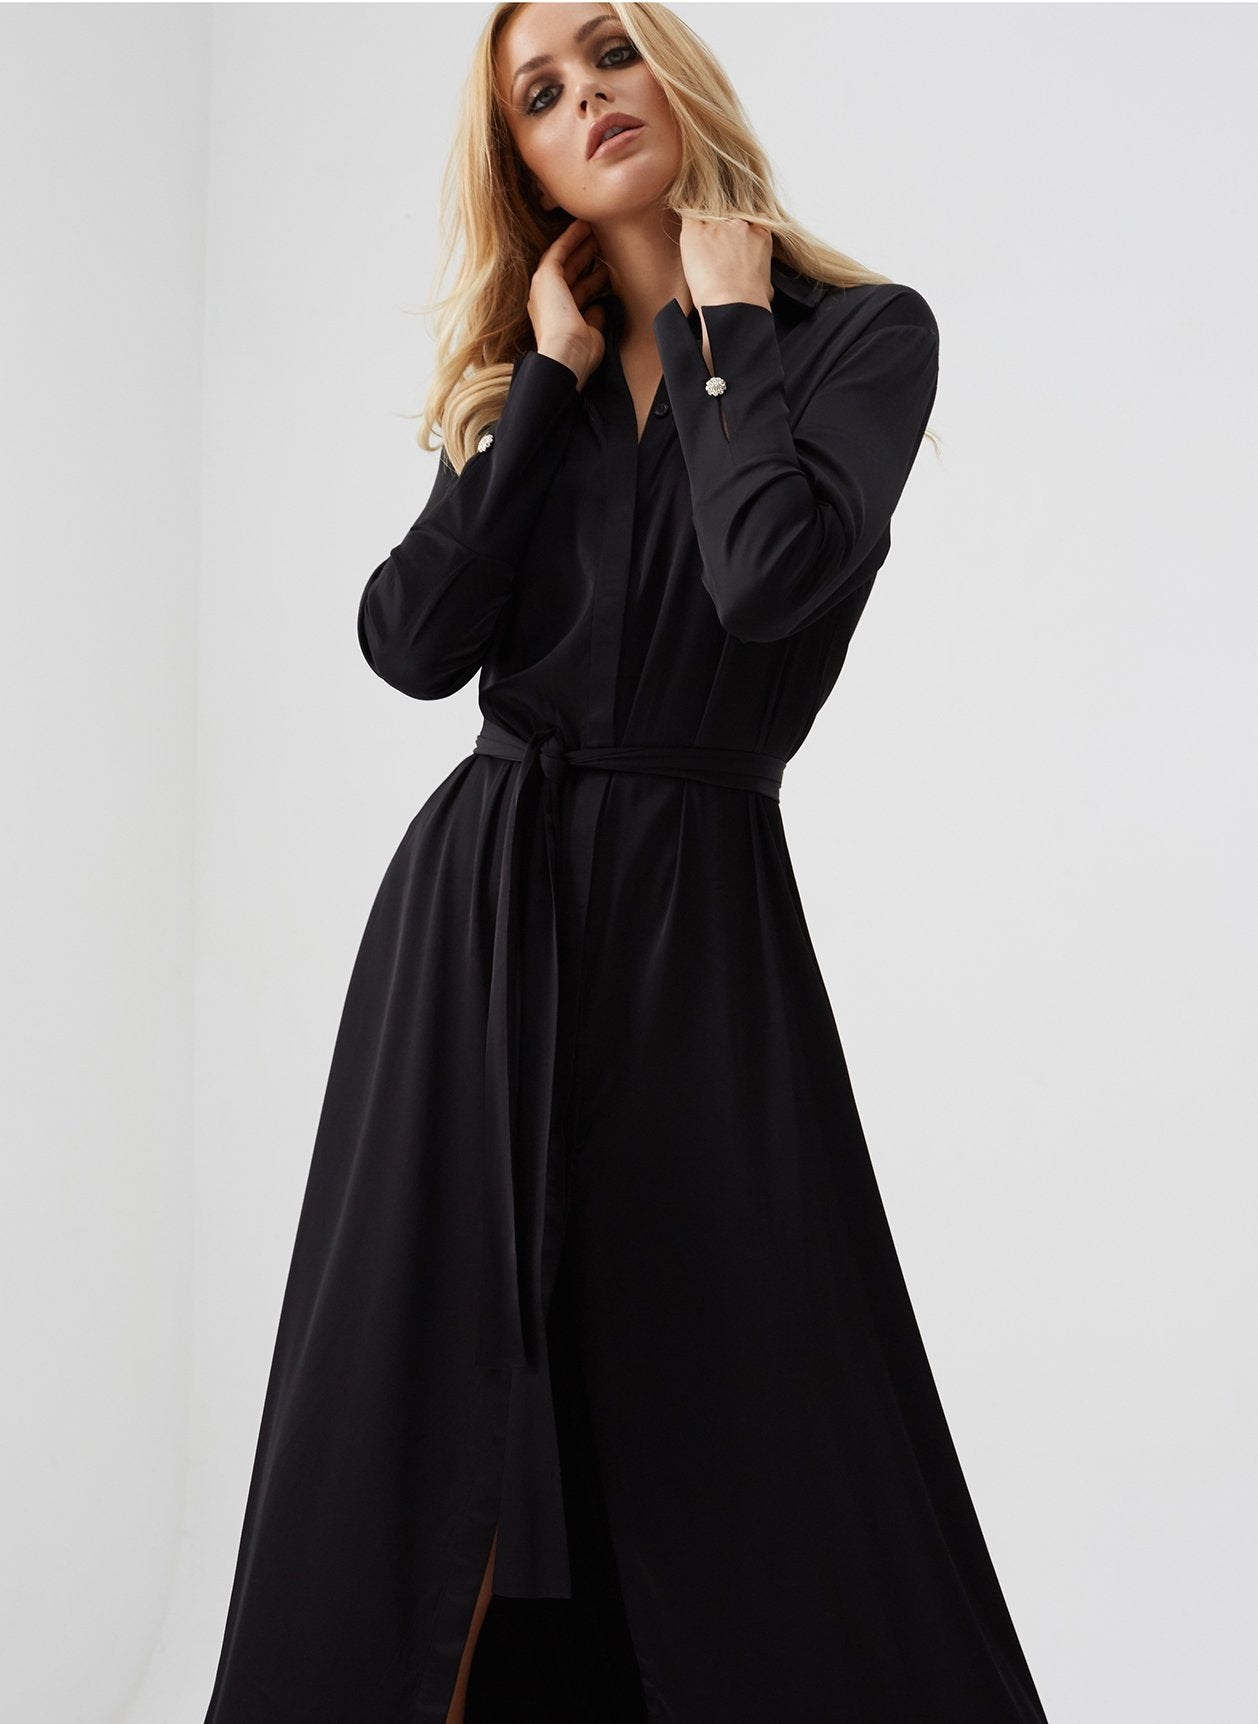 Domenica Black Shirt Maxi Dress